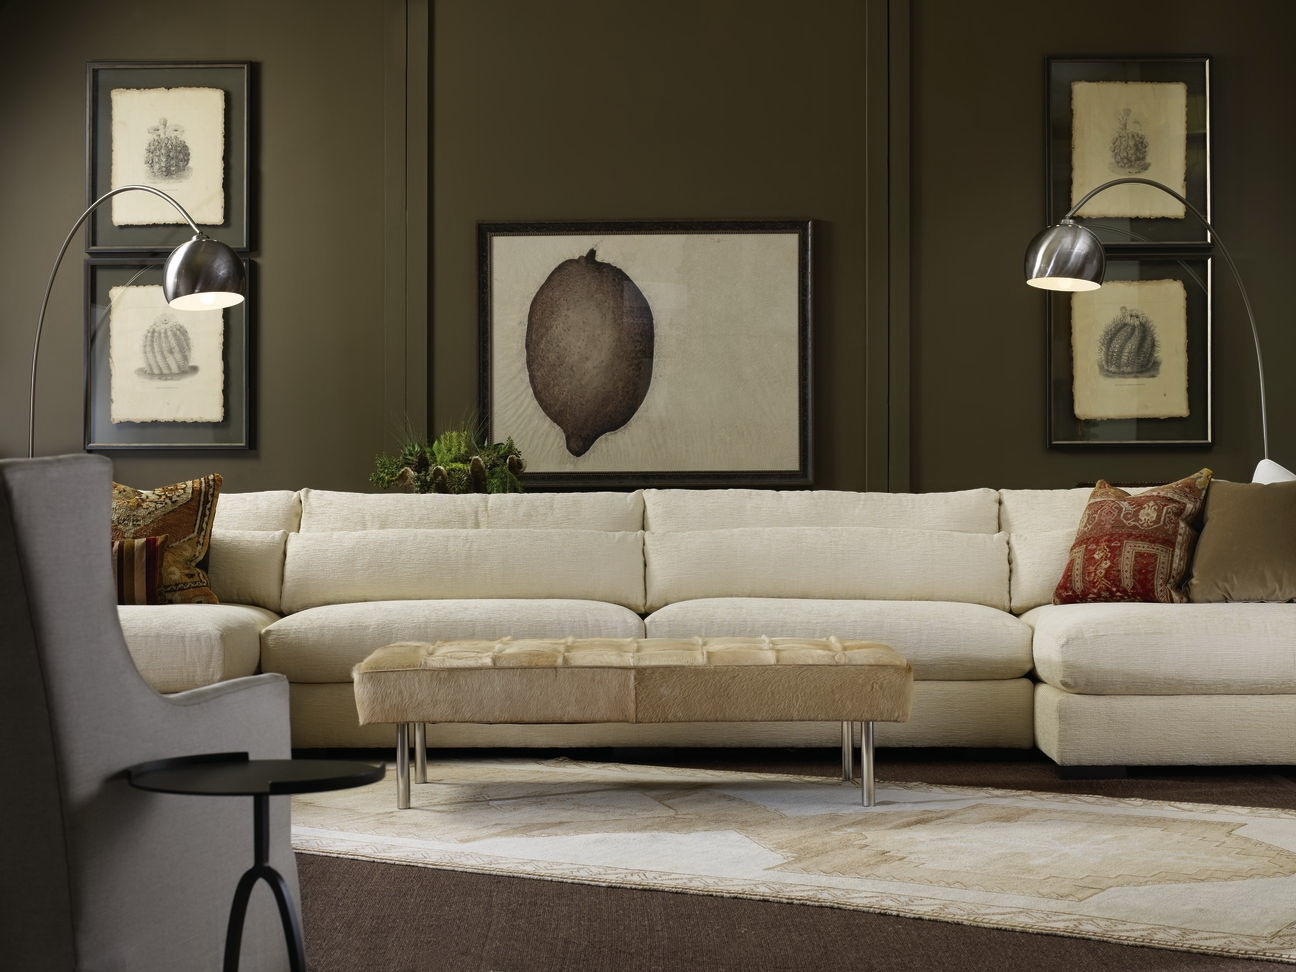 Furniture Nice Interior Furniture Design Robert Michaels Pertaining To Down Feather Sectional Sofa (Image 11 of 15)